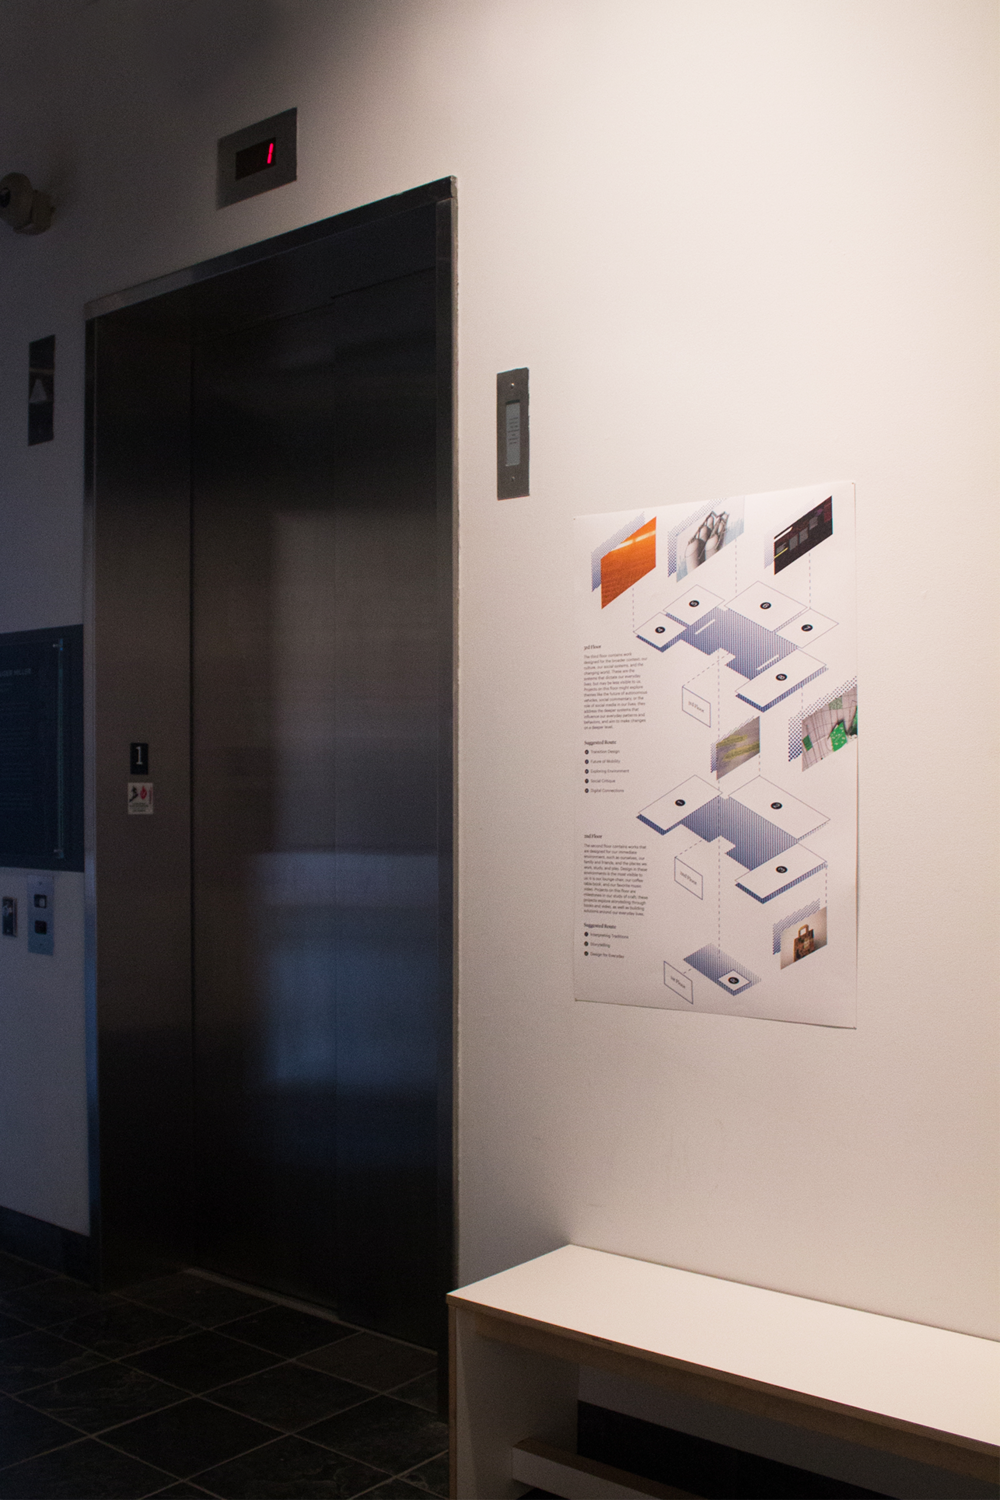 Each floor had a map by the elevator to orient the viewer and explain the different sections of the gallery. The map was also featured in the booklet.